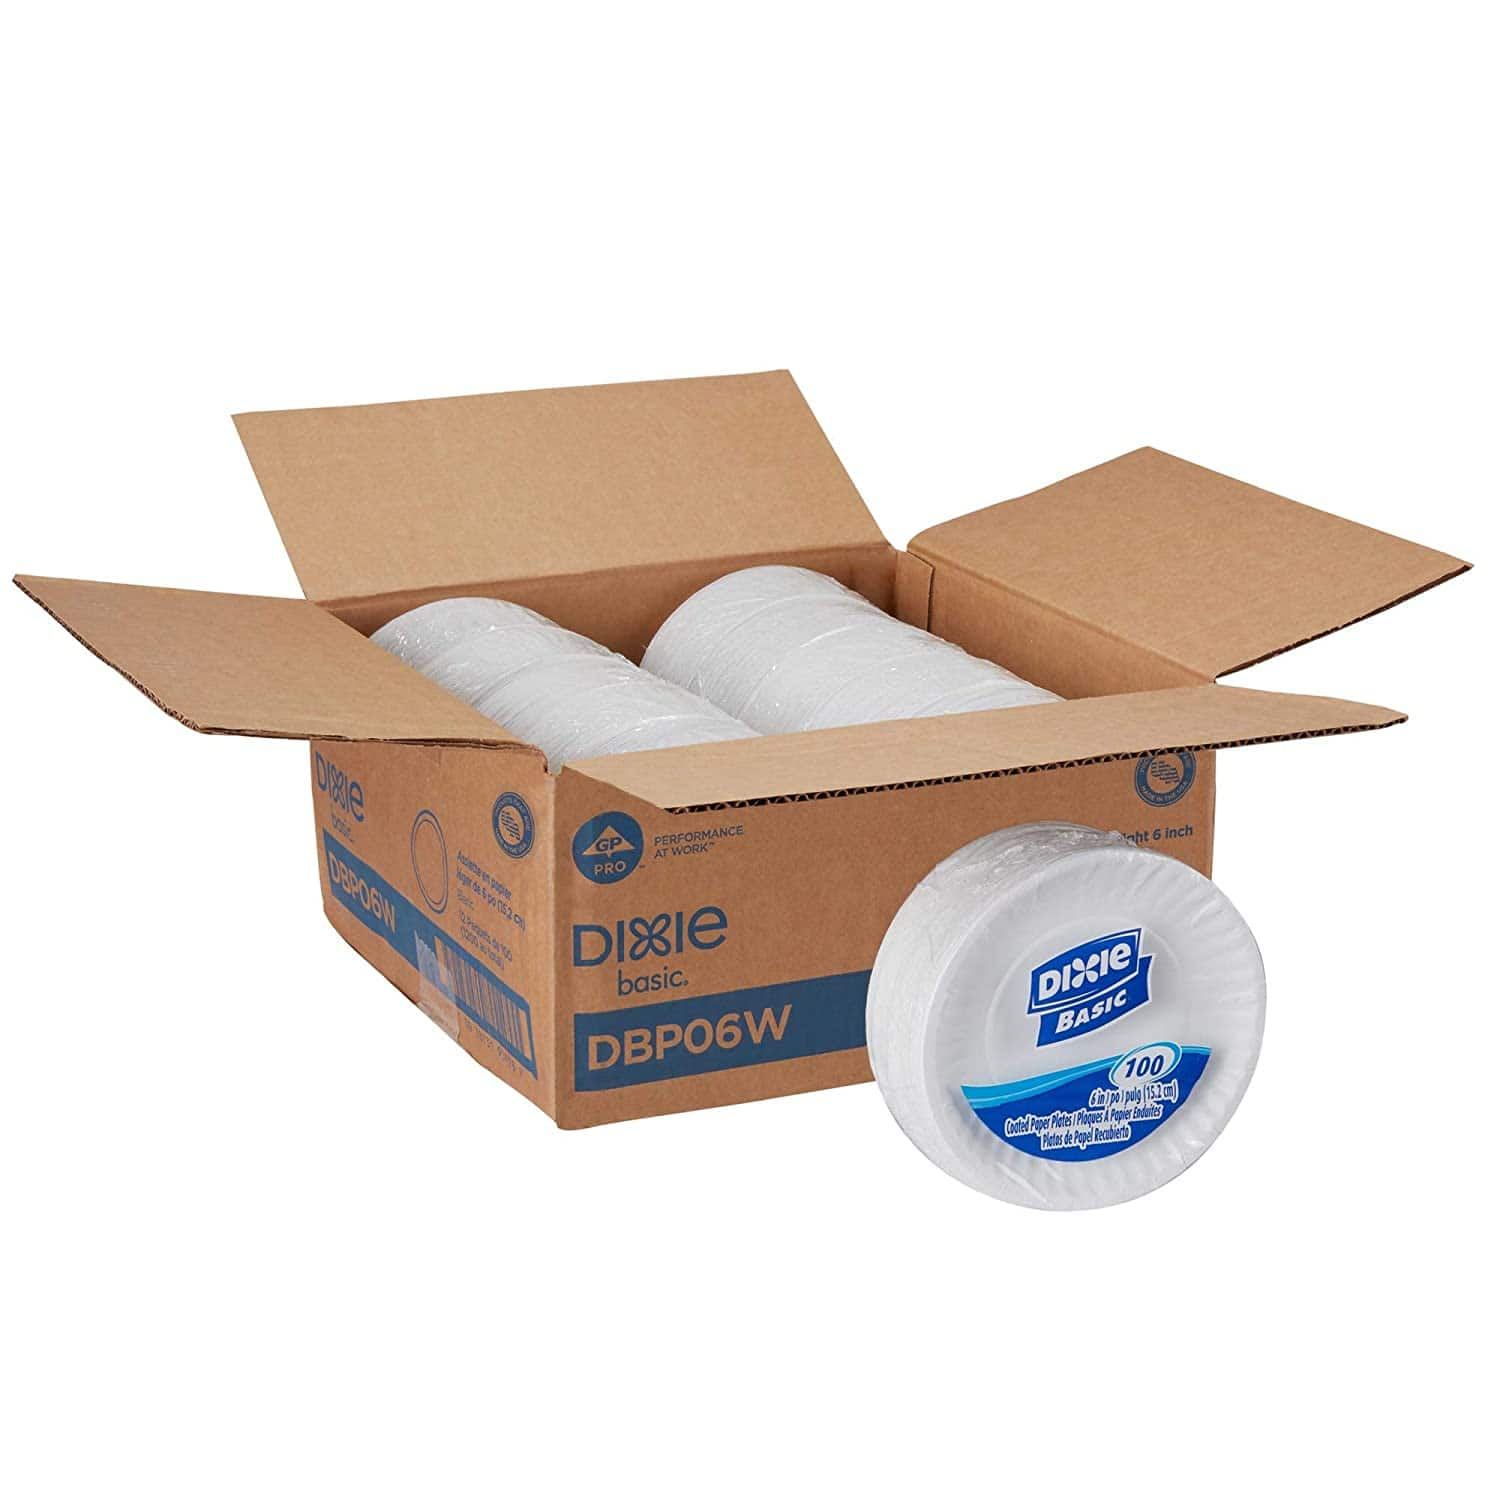 """Dixie Basic 6"""" Light-Weight Paper Plates, 1,200 Count  $20.58 @ Amazon"""